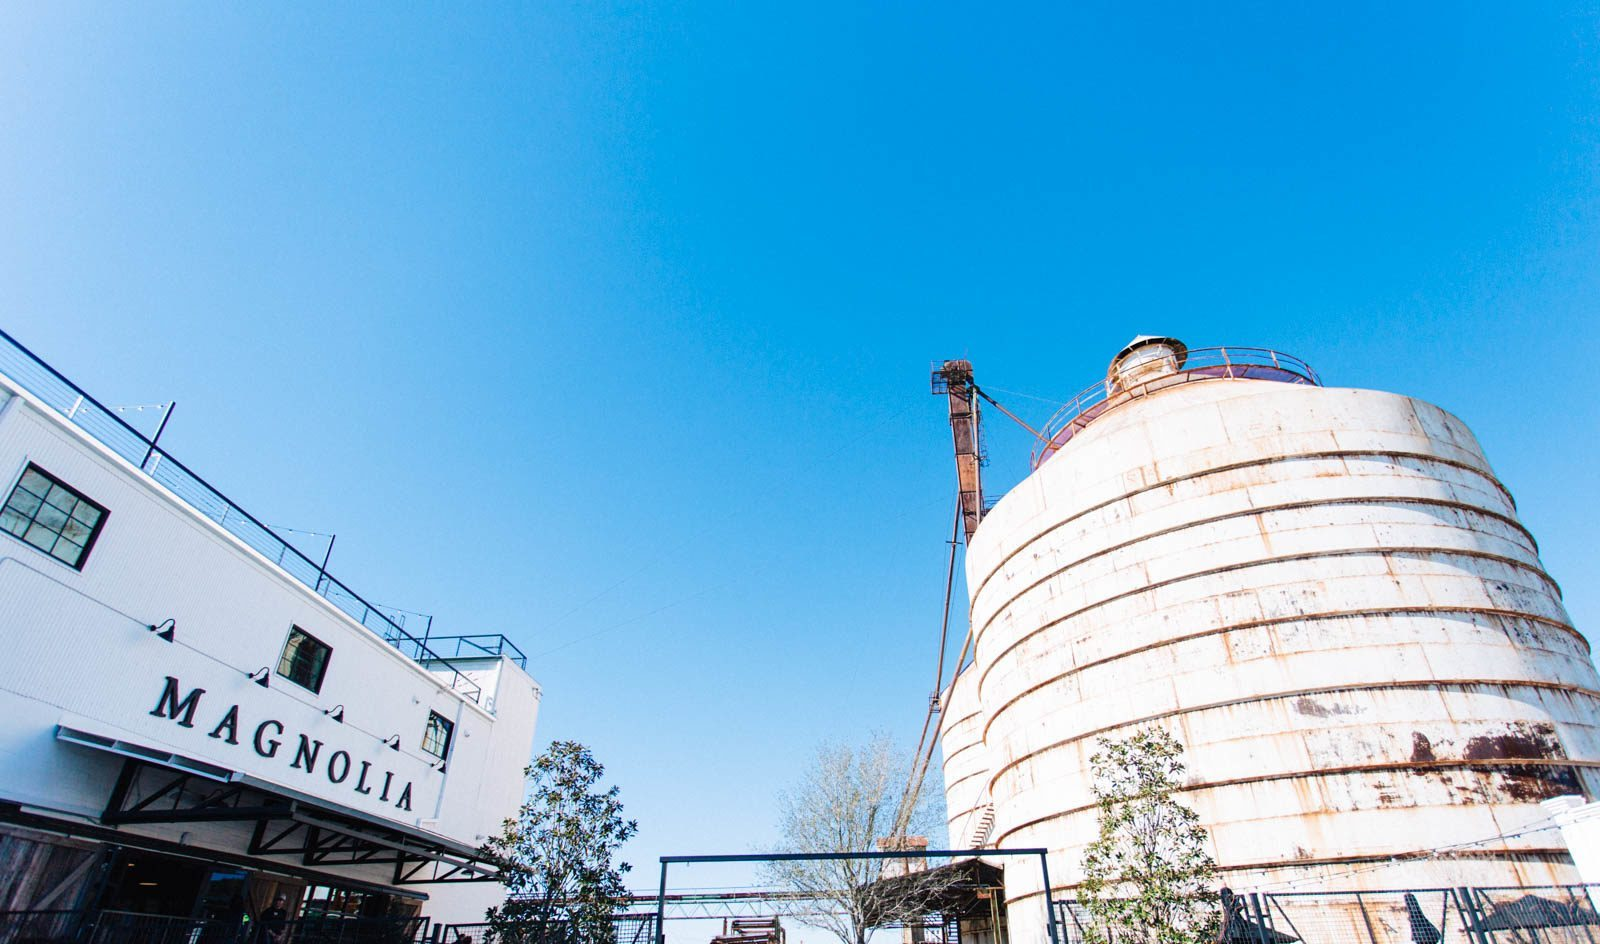 Travelogue: Magnolia Market at the Silos